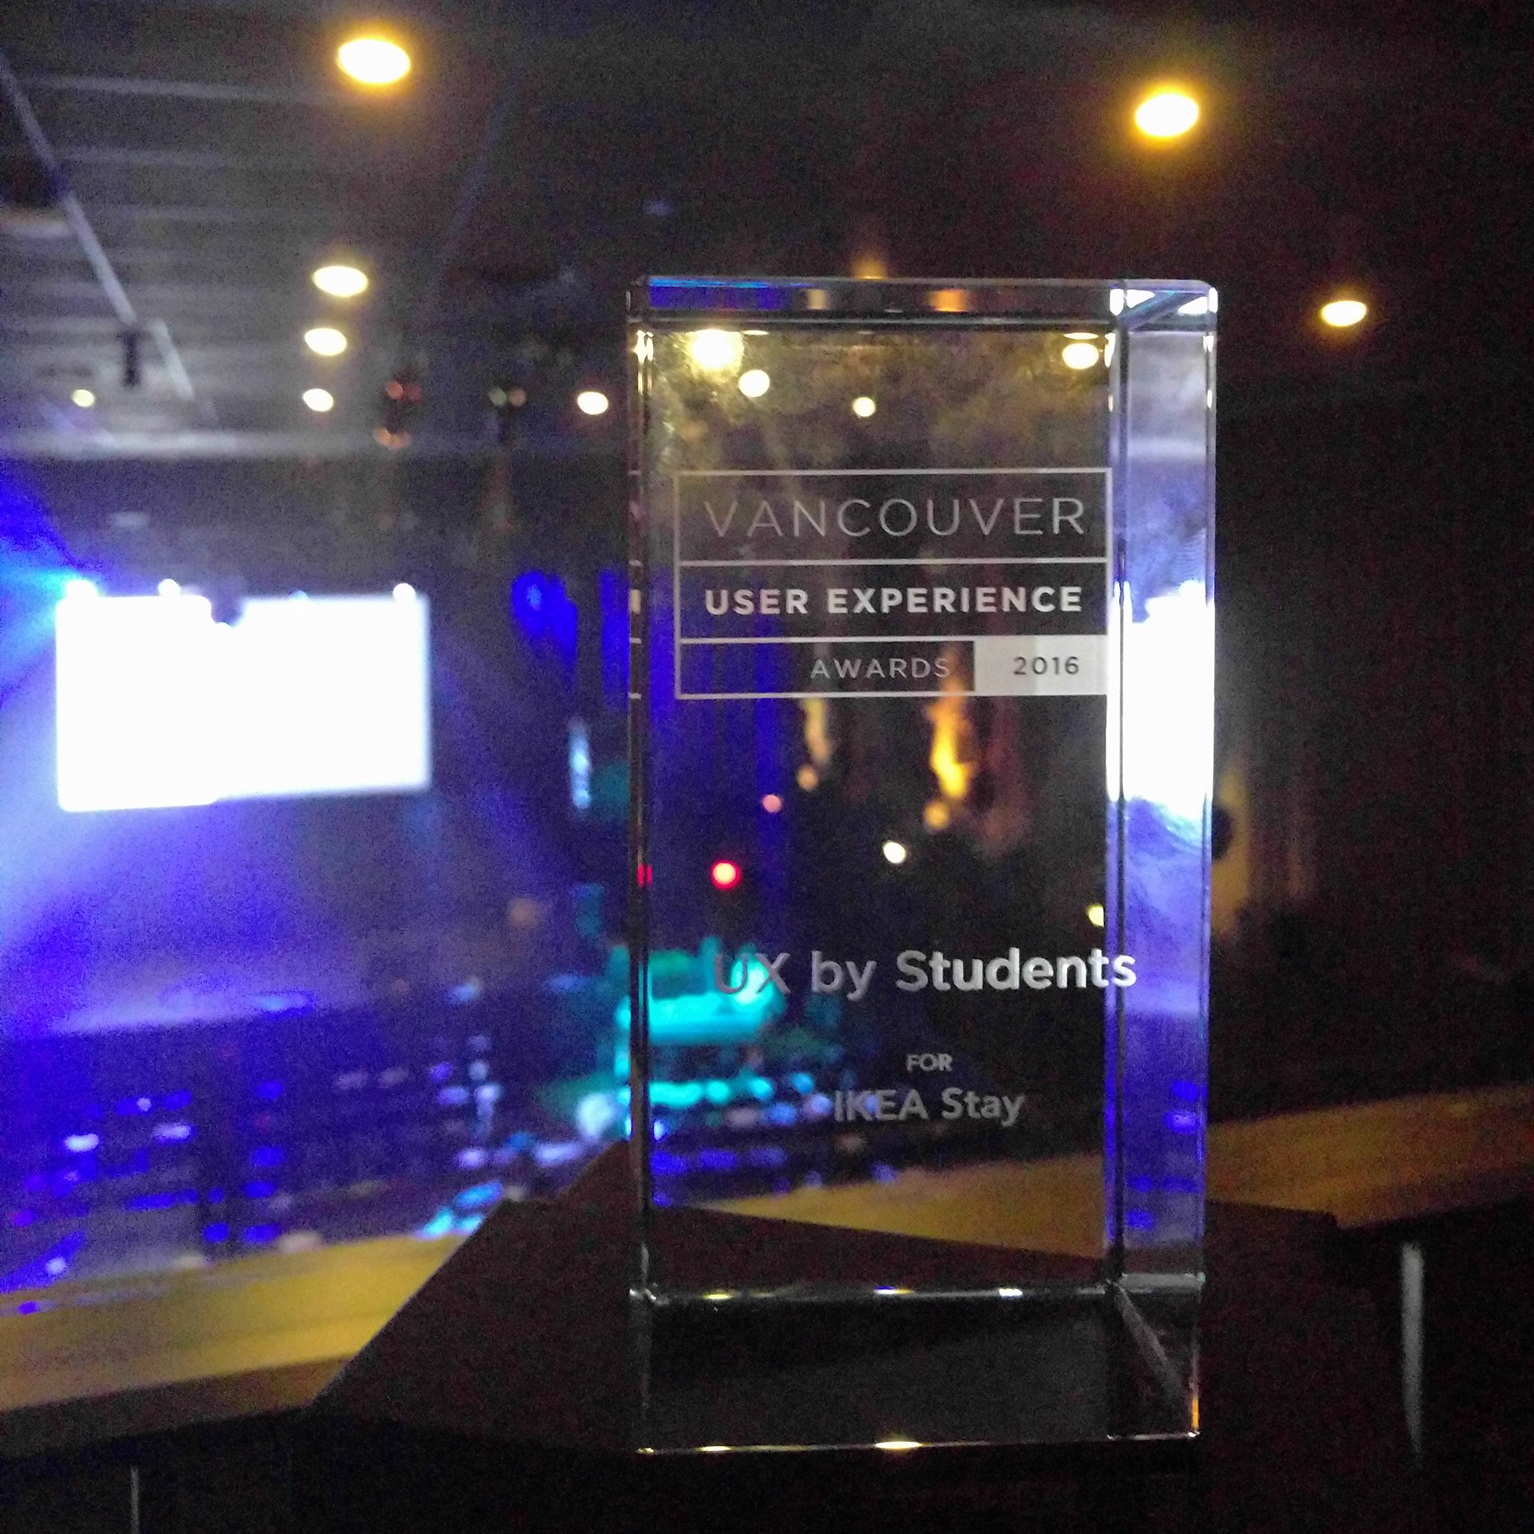 UX by Students award - Vancouver UX Awards 2016. Picture credit: Edward Chen